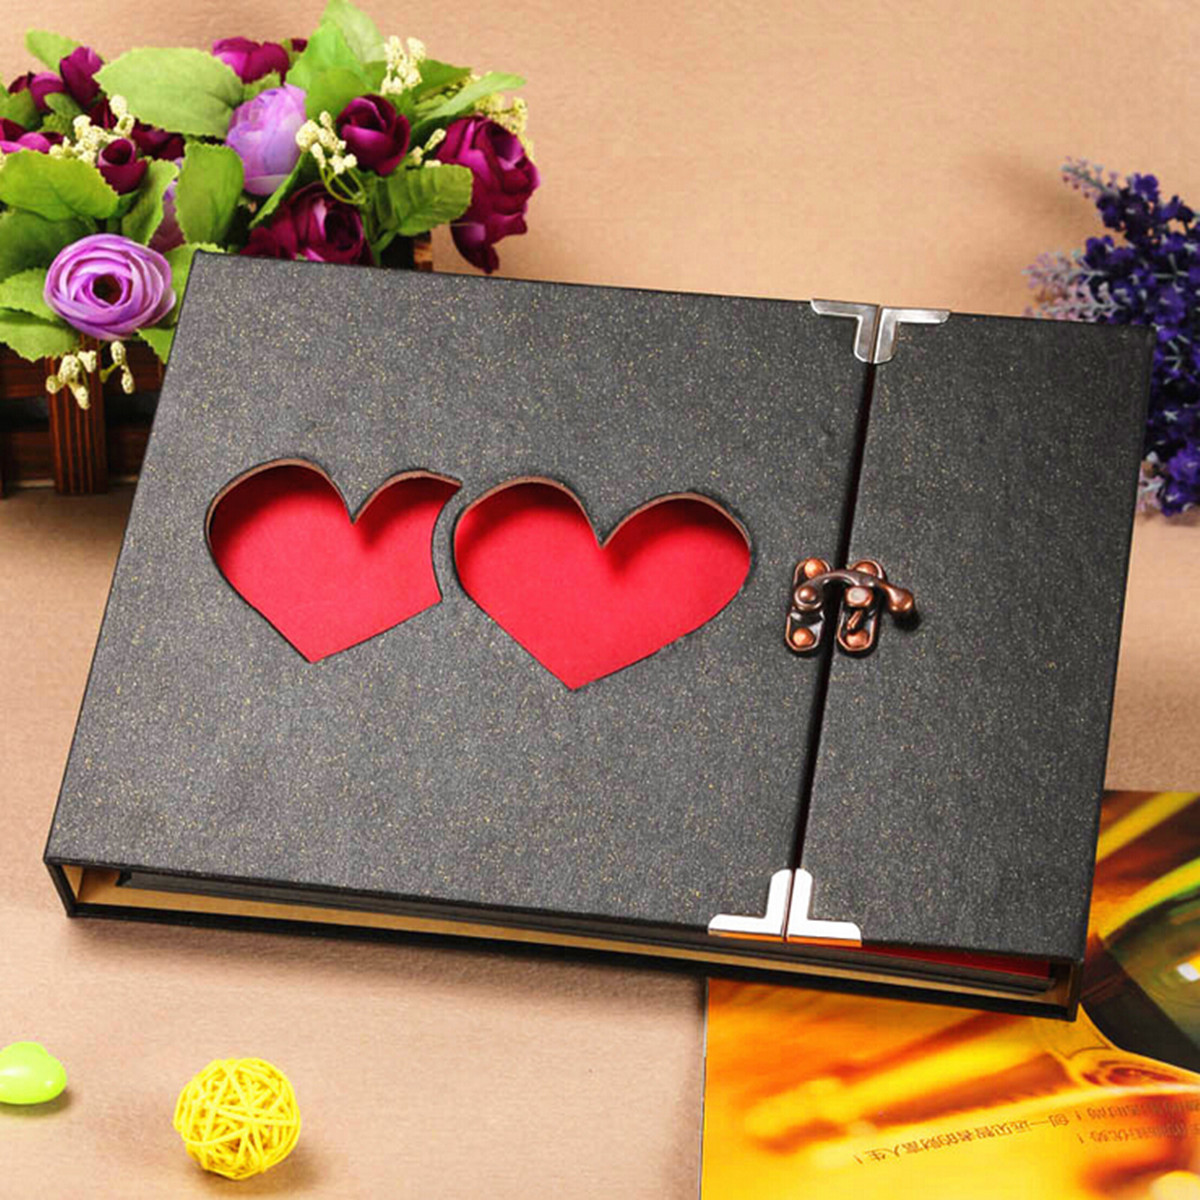 Scrapbook ideas for anniversary - Image Is Loading Hollowed Heart Love Photo Photography Album Scrapbook Diy